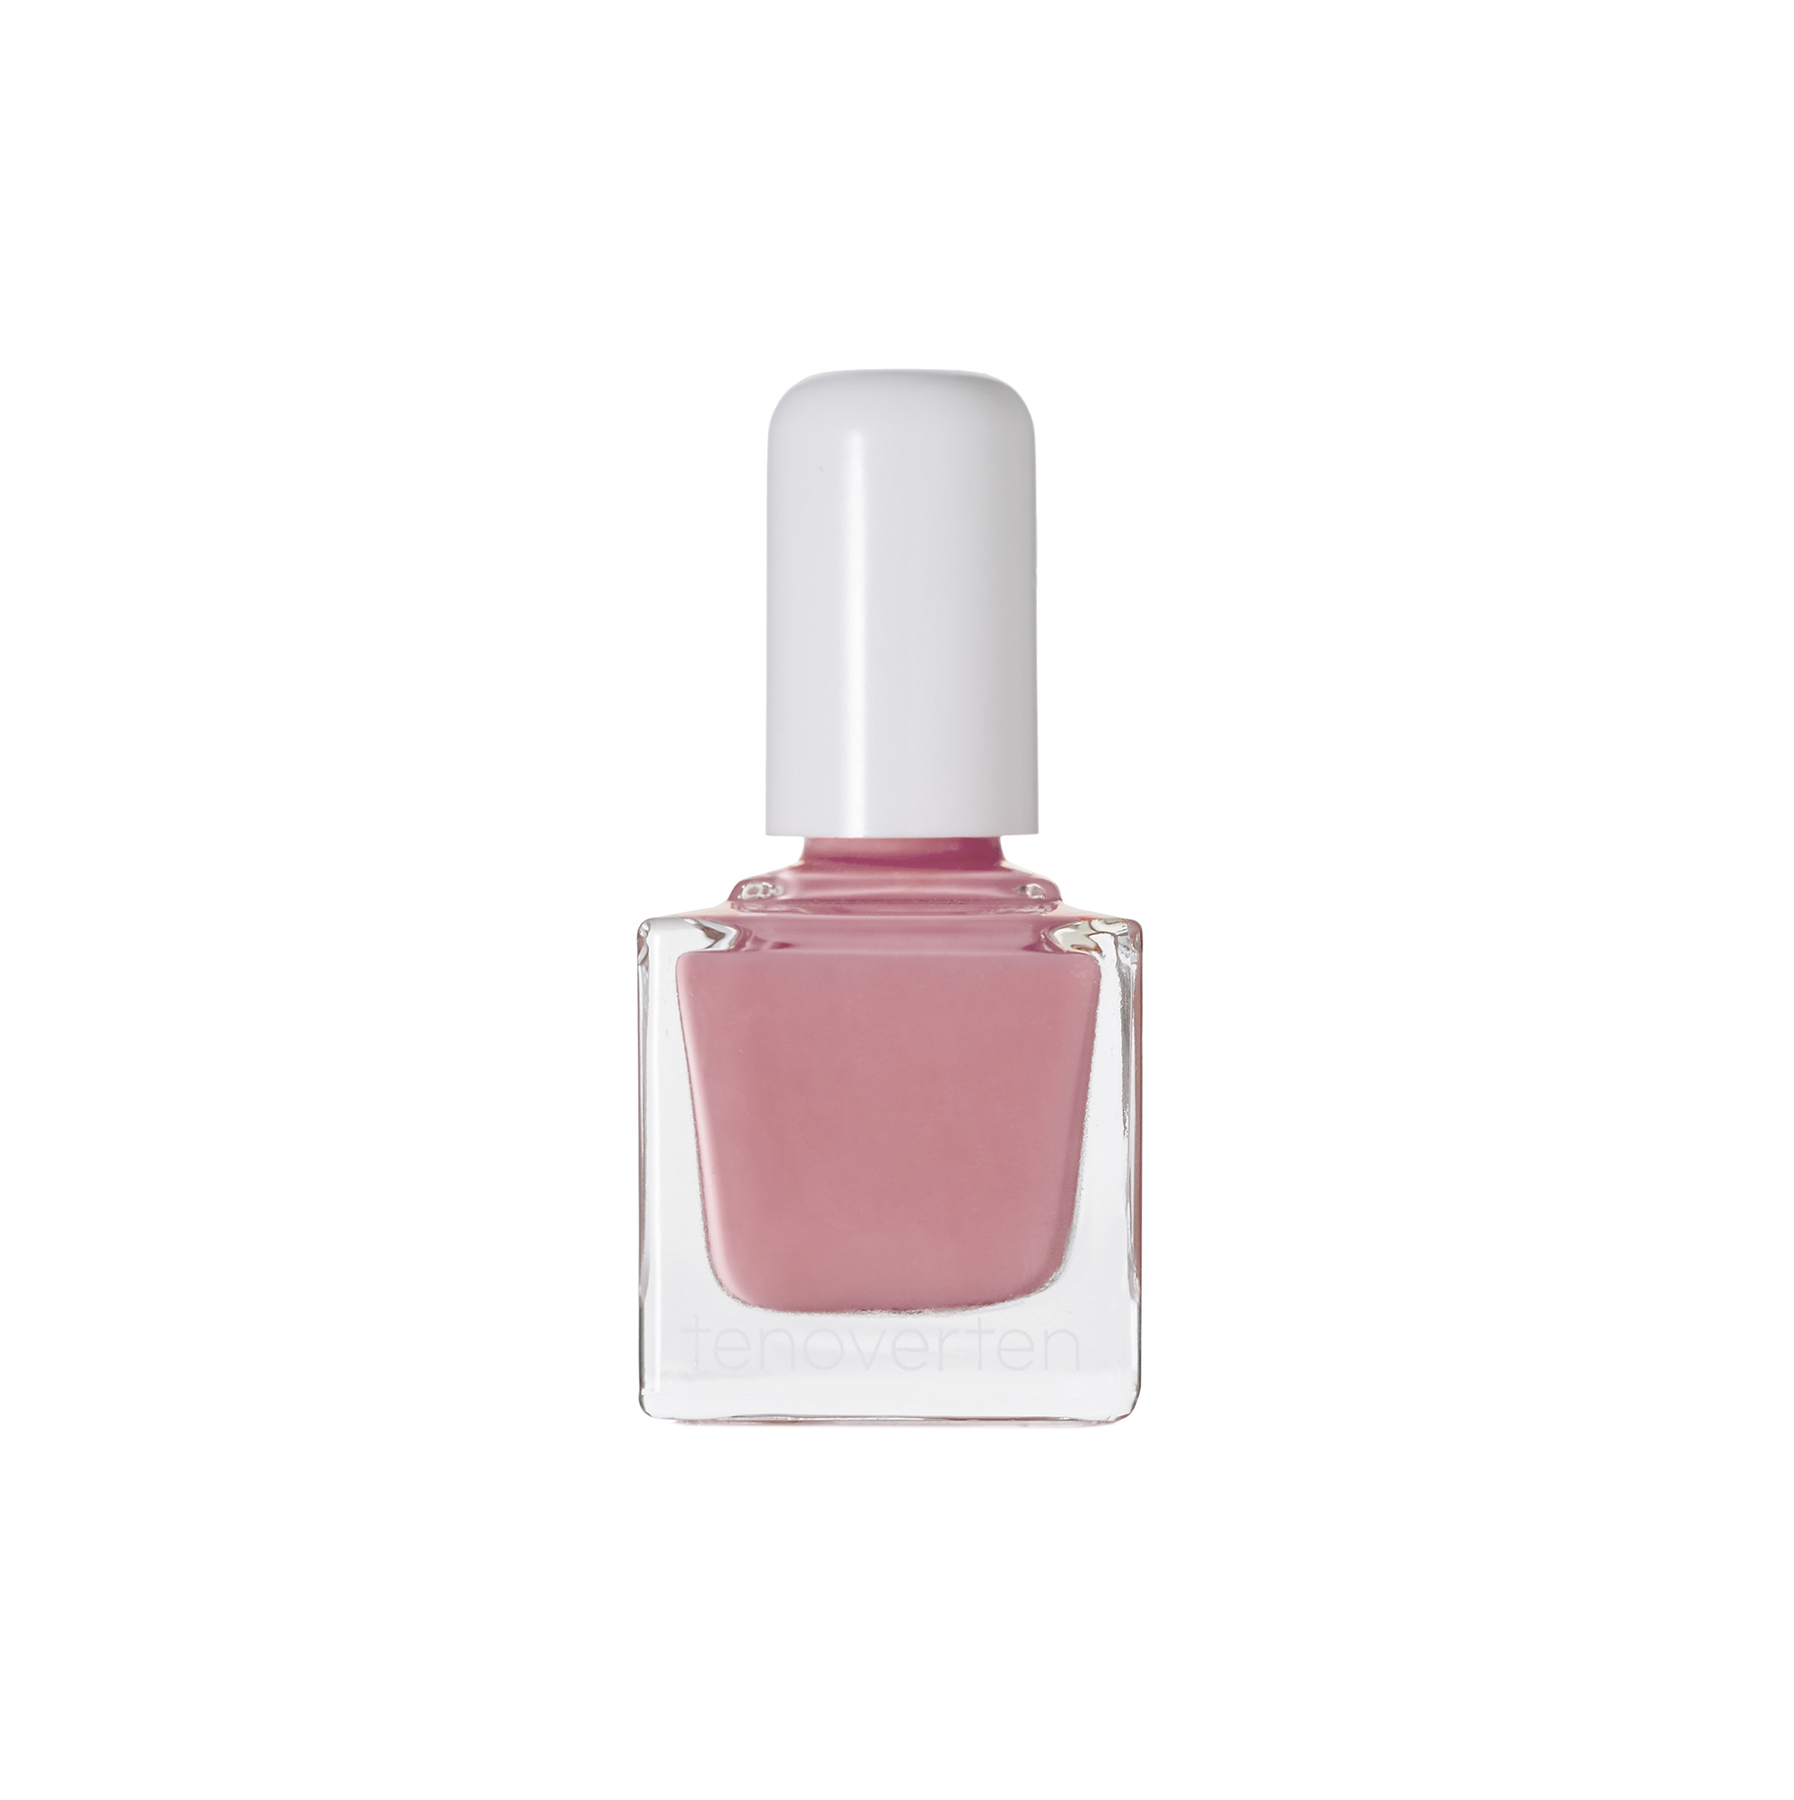 TENOVERTEN Nail Polish in Mulberry